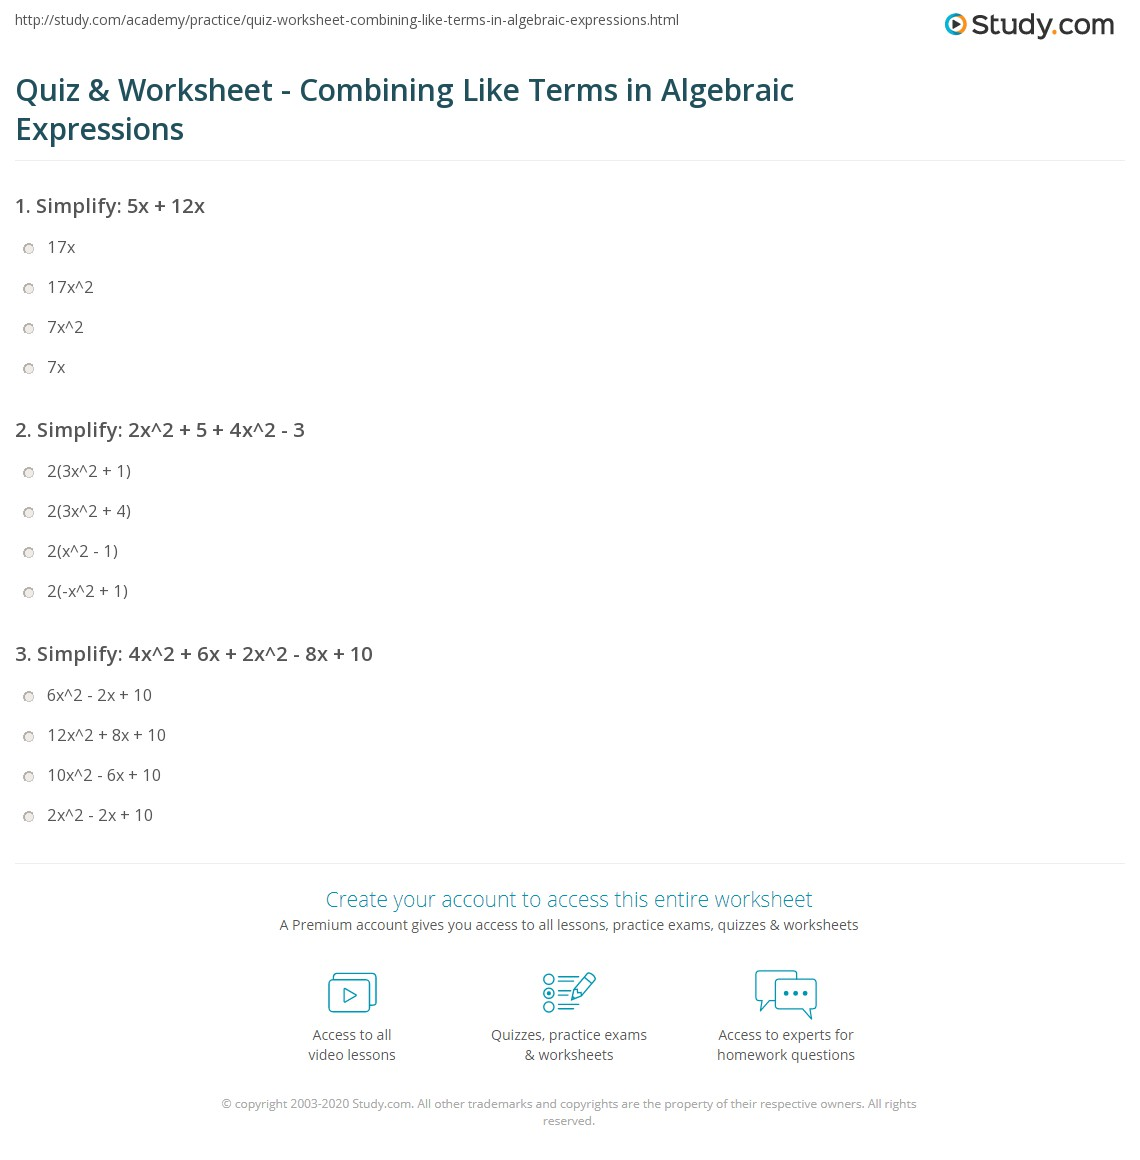 worksheet Like Terms Worksheets quiz worksheet combining like terms in algebraic expressions print worksheet